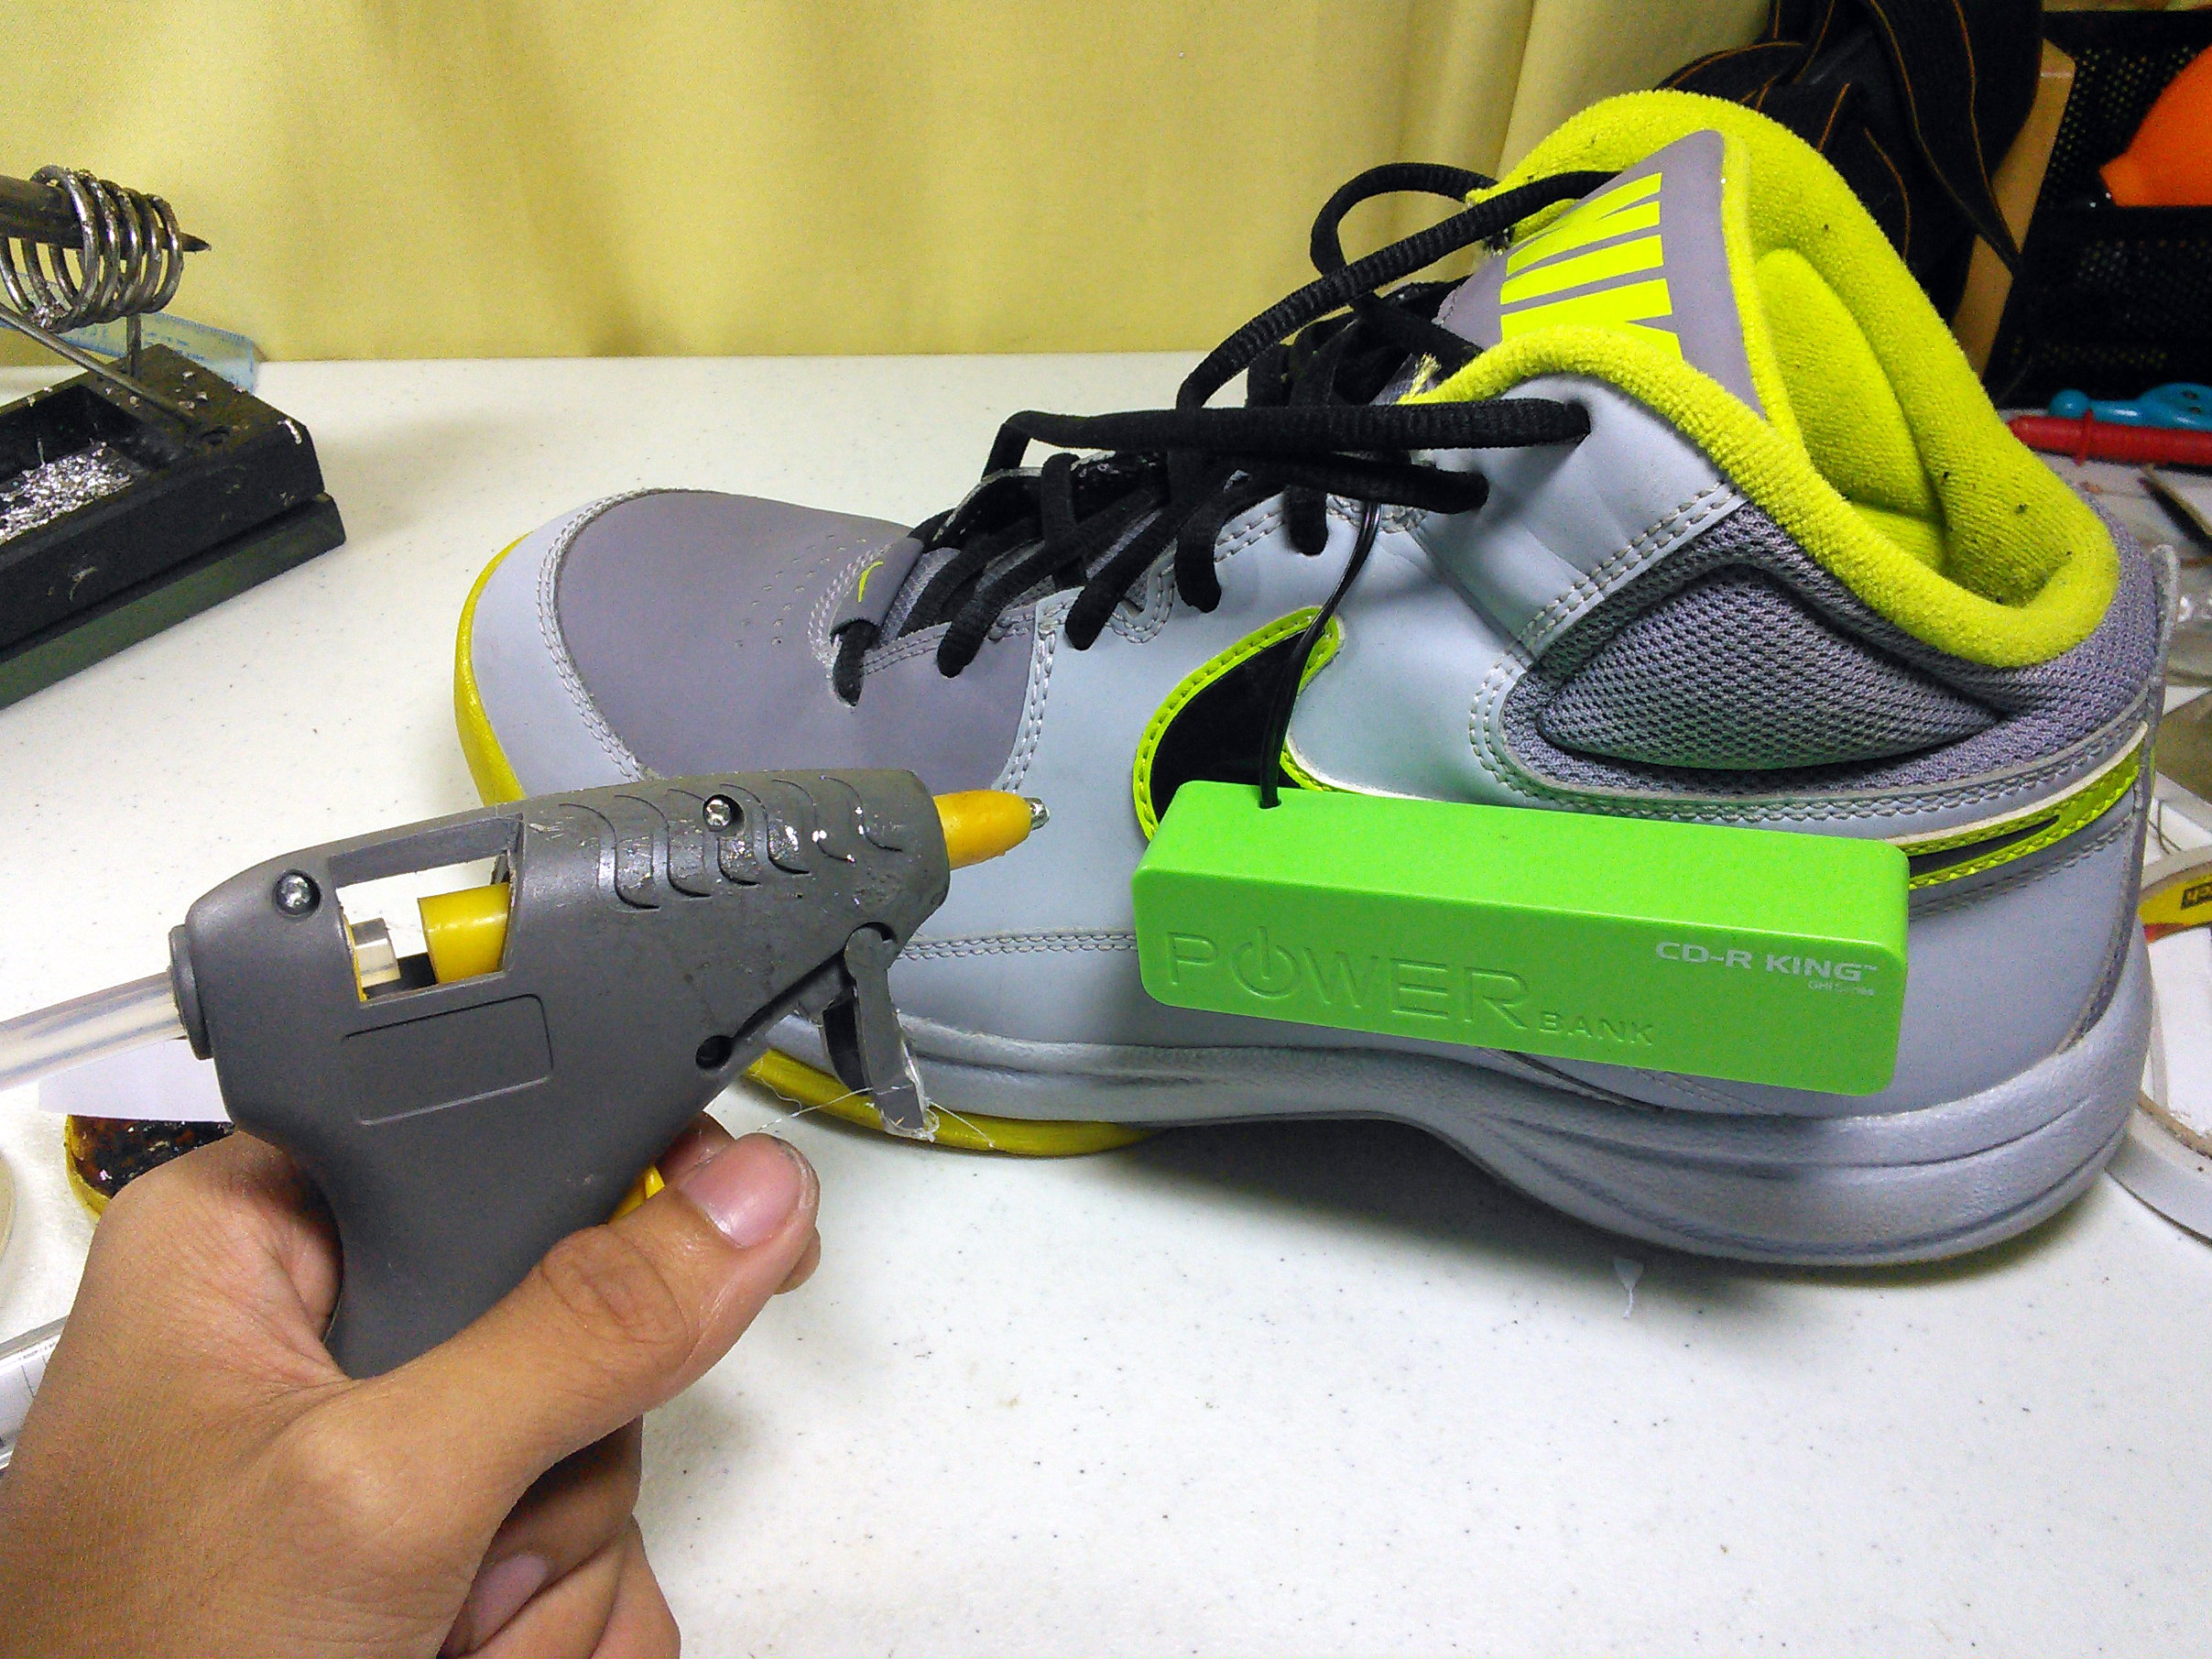 A powerbank is soldered to the side of the shoe